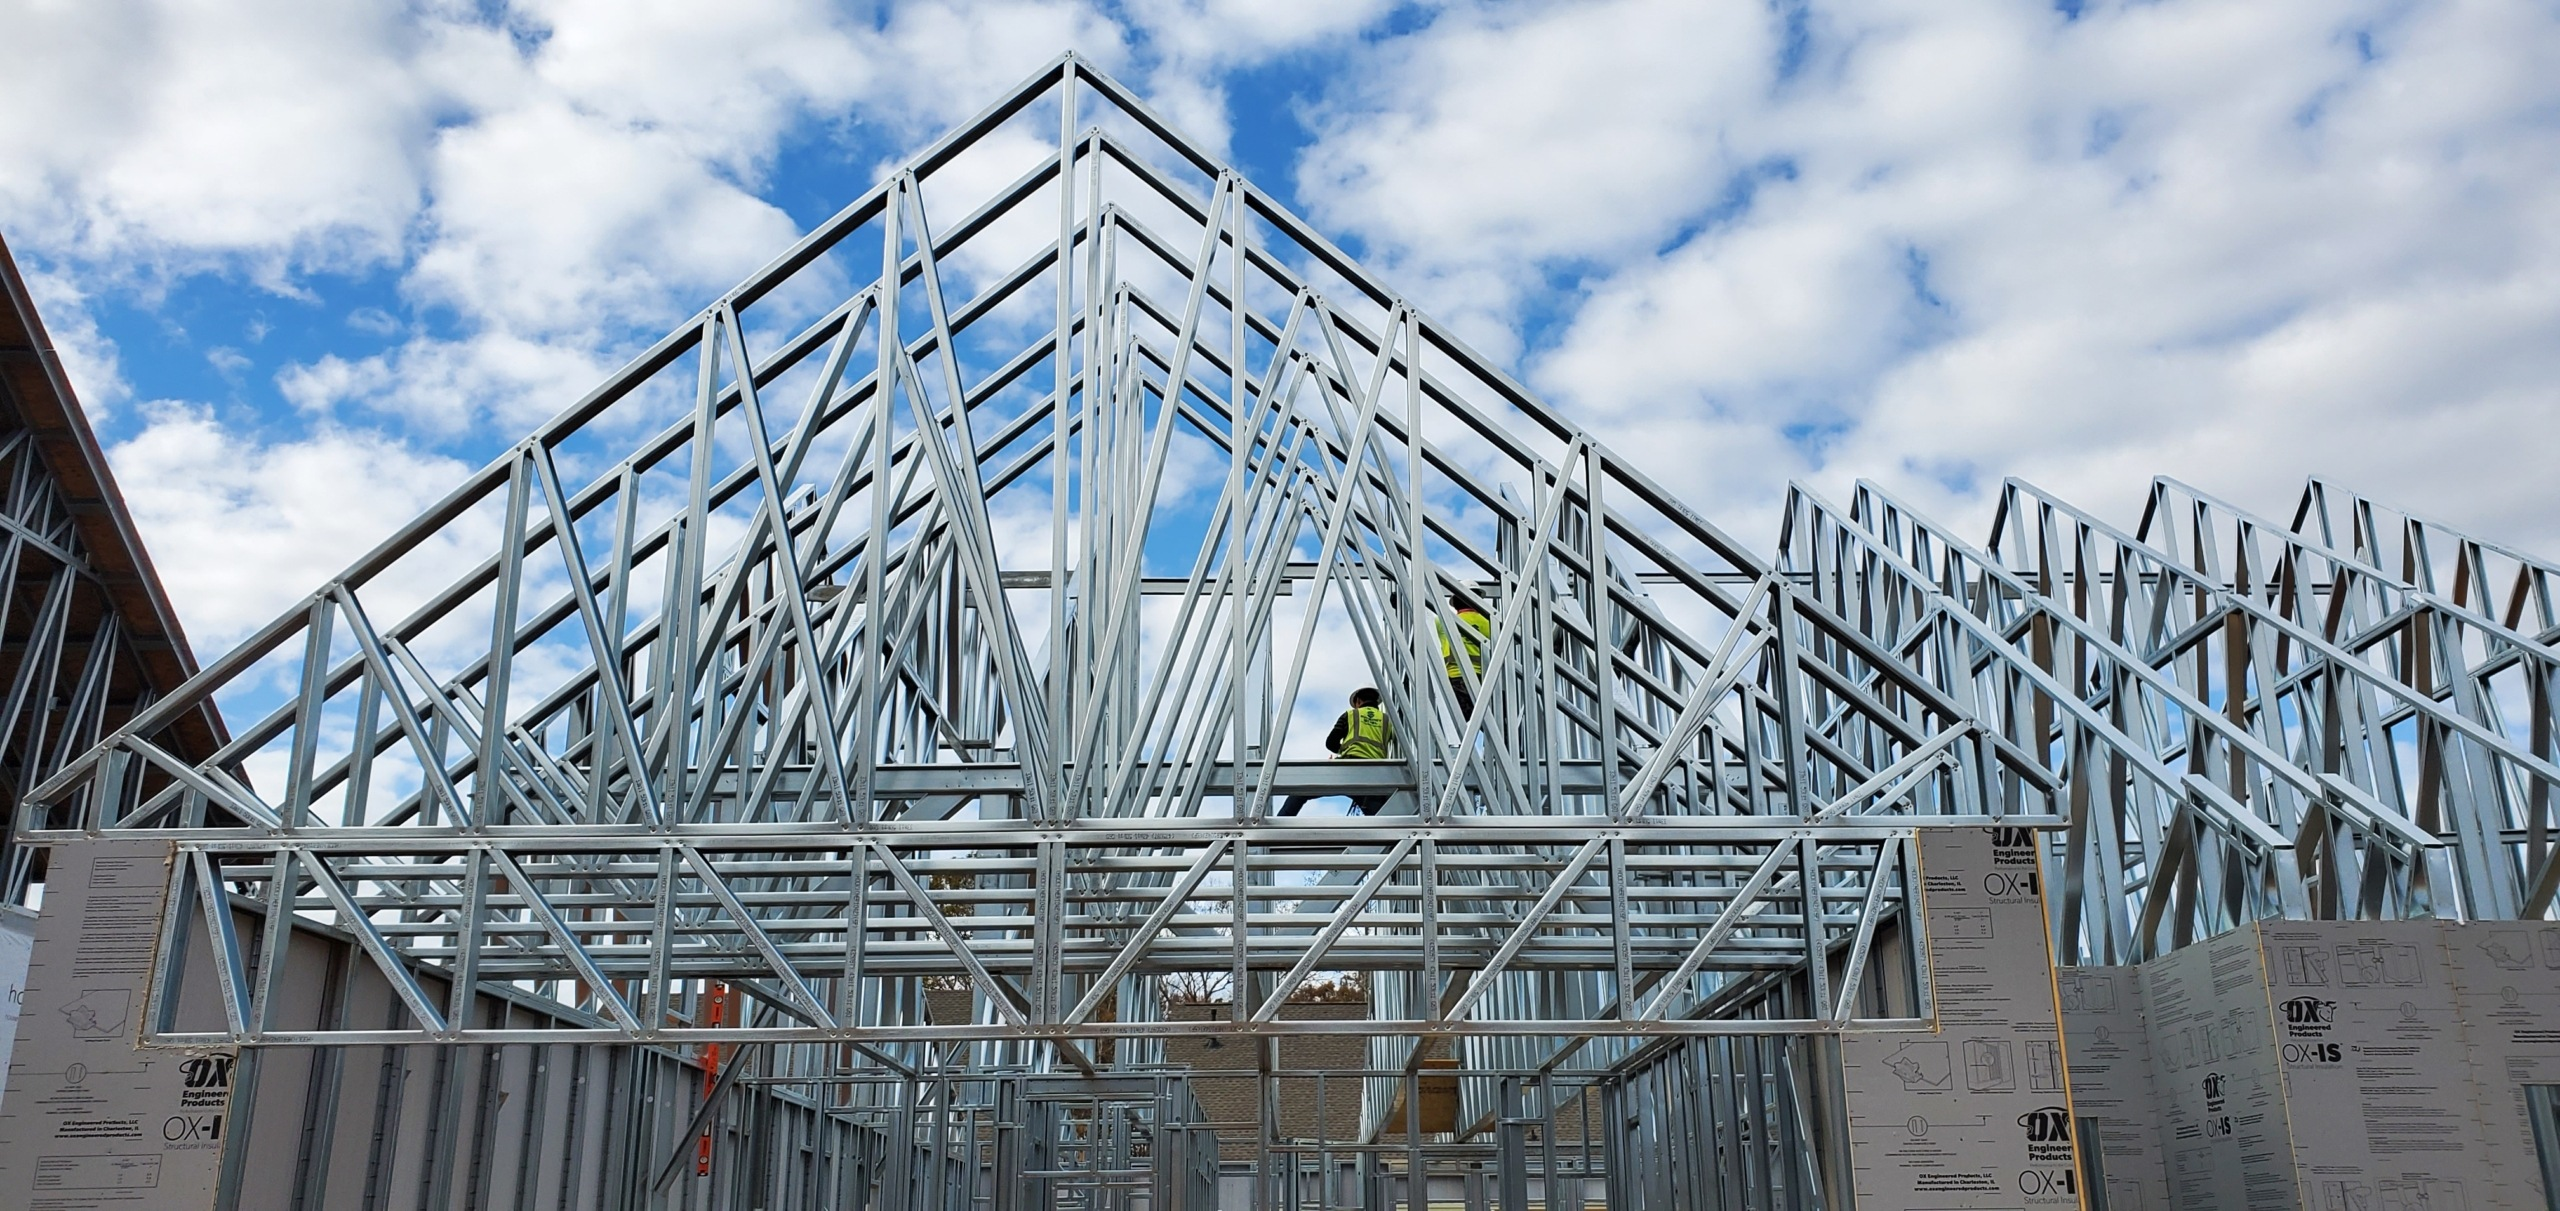 Truss Assemblies: How Cold-Formed Steel Performs Compared to Other Common Materials